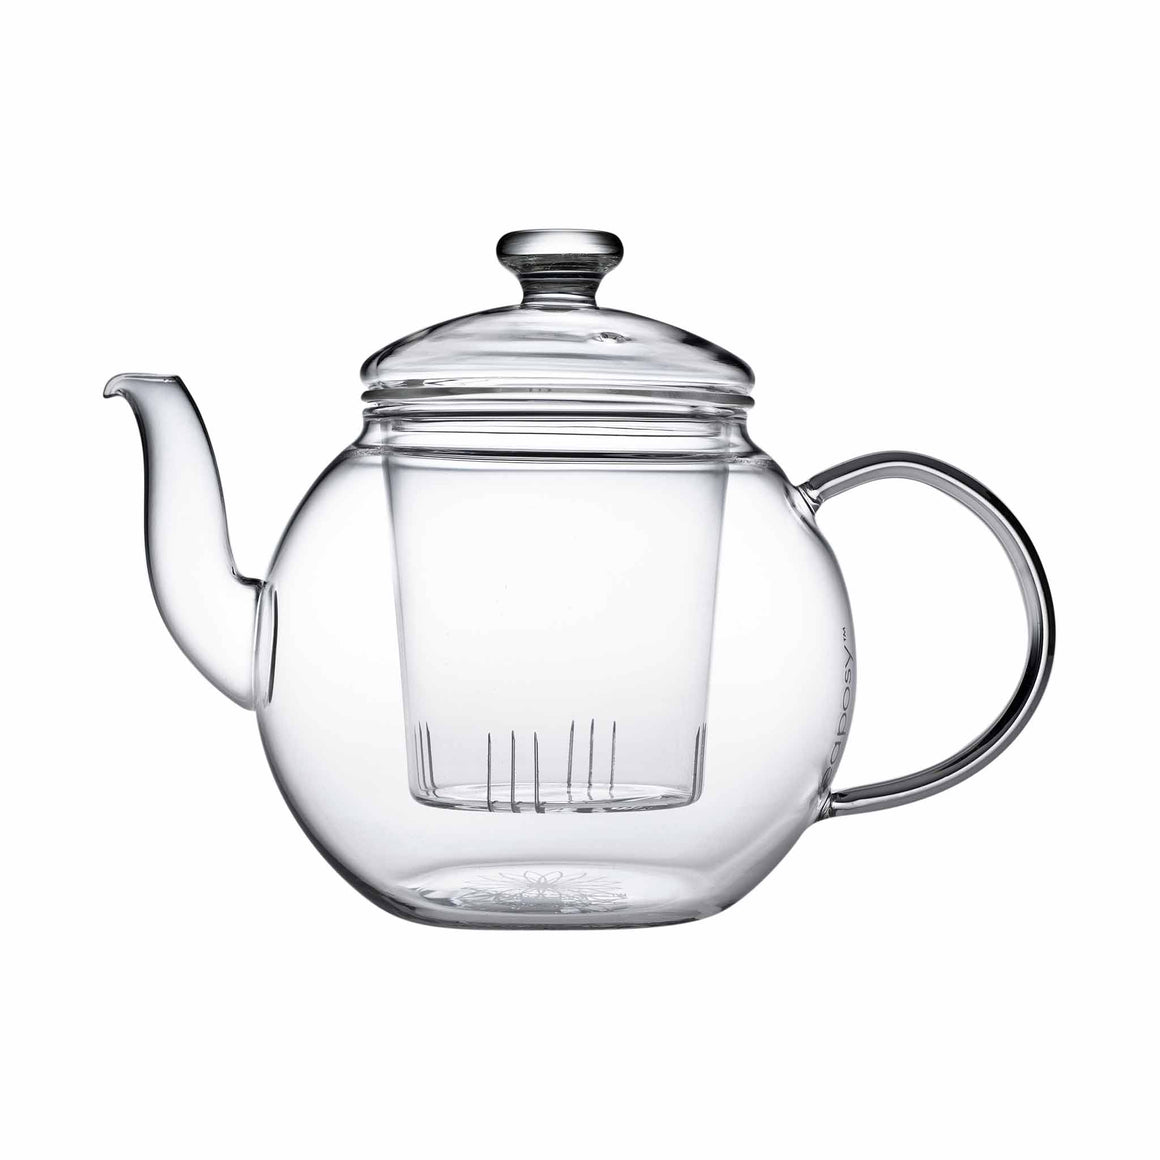 teaposy harvest glass teapot with removable glass loose tea infuser